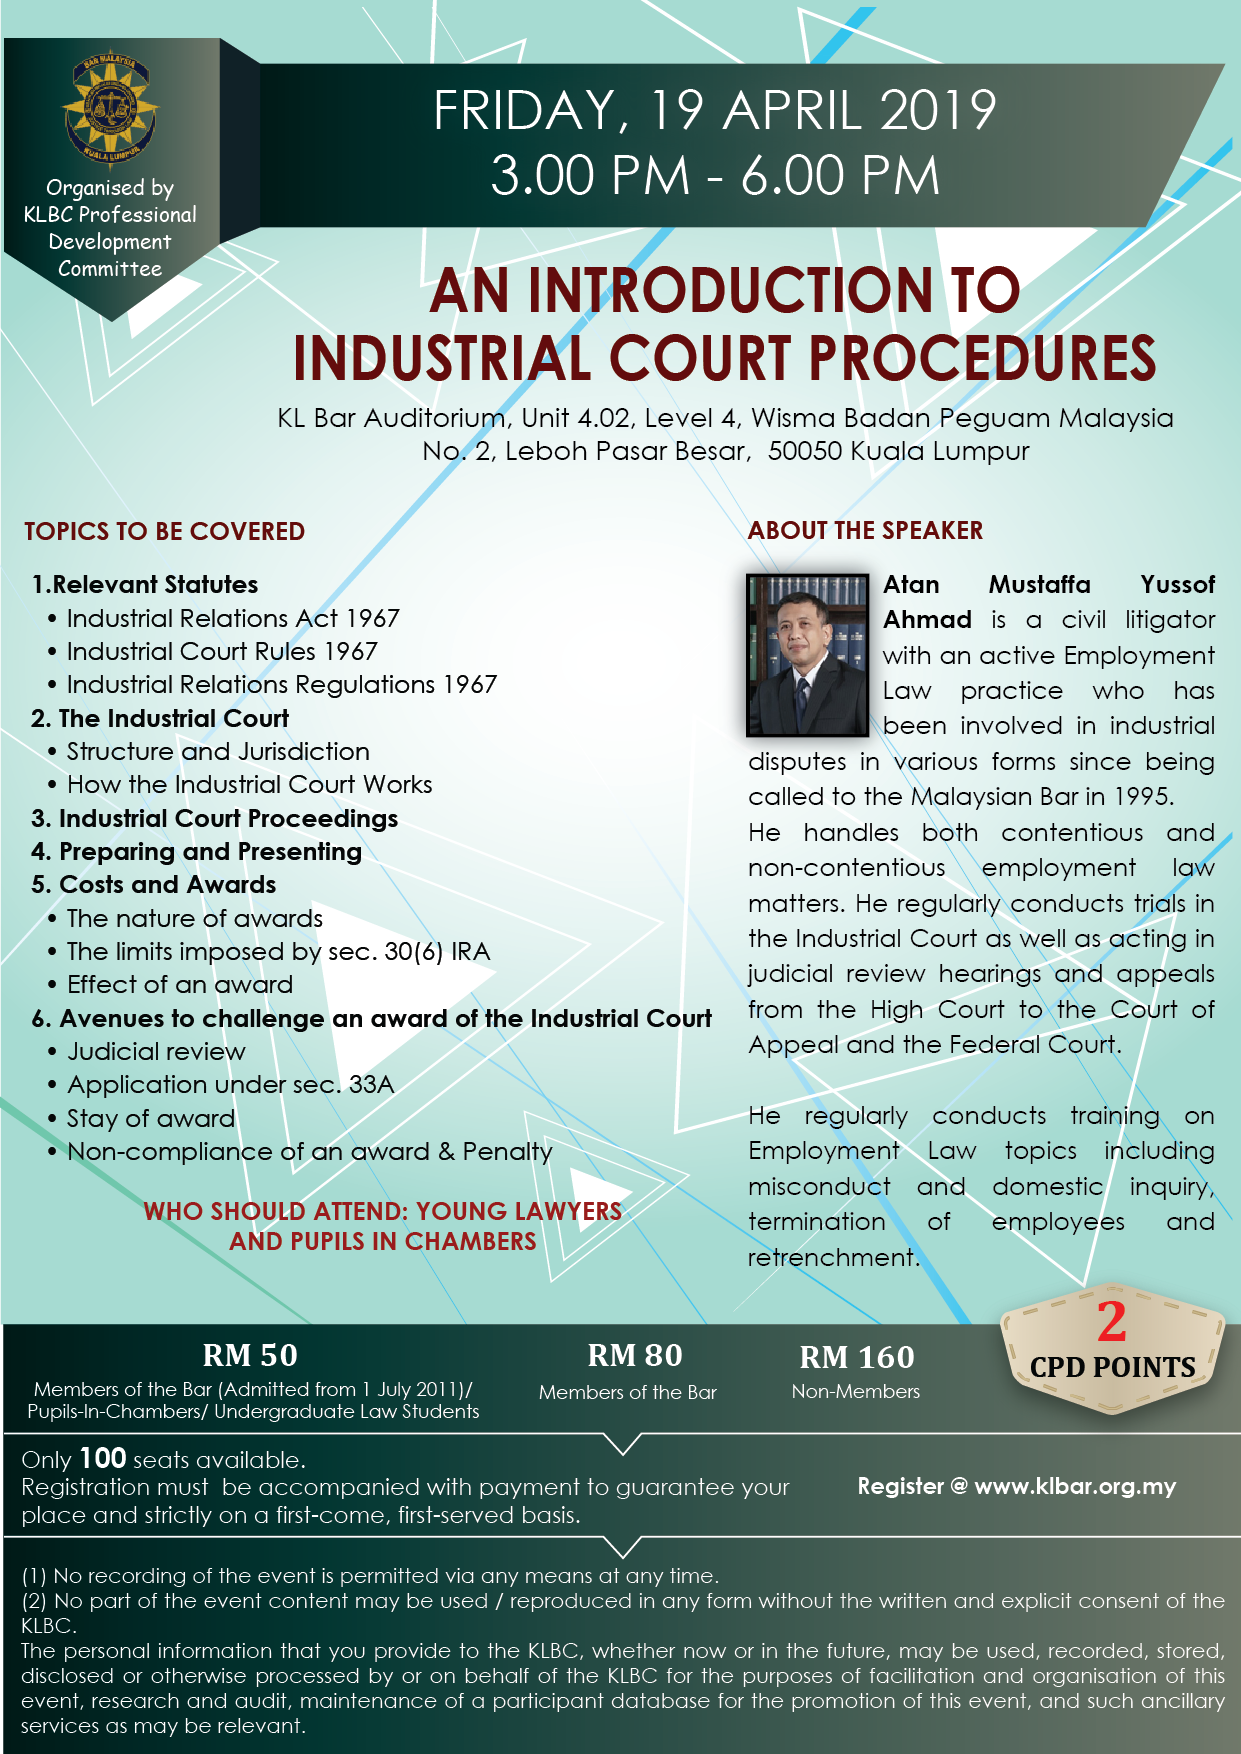 1003dc7e039 PDC Seminar on An Introduction to Industrial Court Procedures on 19 April  2019